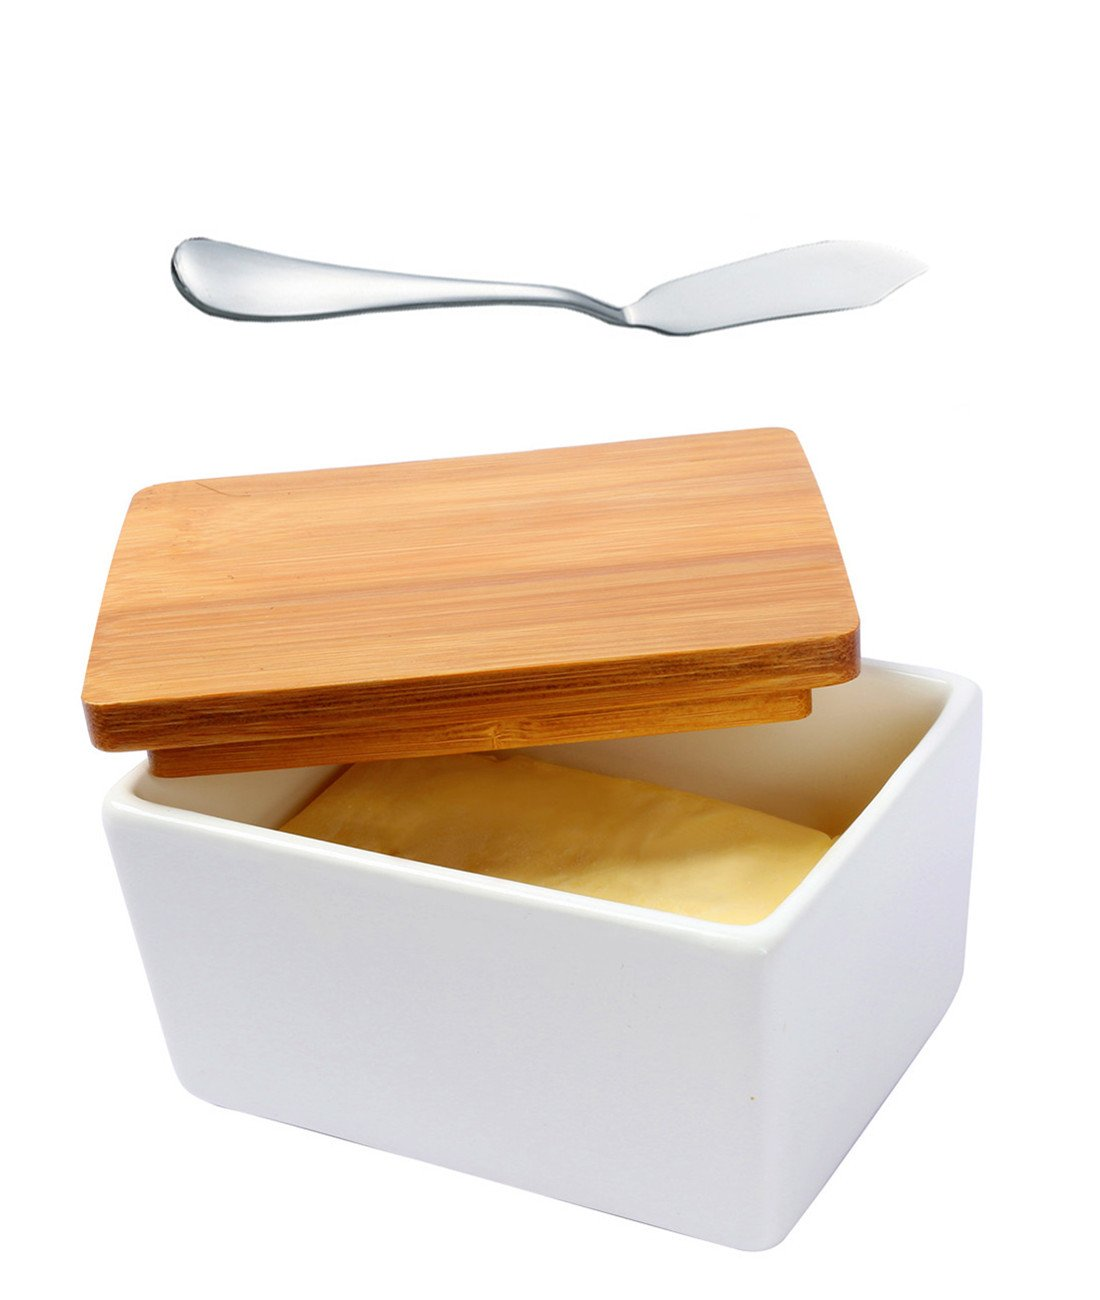 Fecihor Butter Dish with Butter Knife, Butter Keeper Butter Container with Bamboo Lid Food Storage Candy Box Baking Dish,White(5.1''3.7''2.7'',500ml)